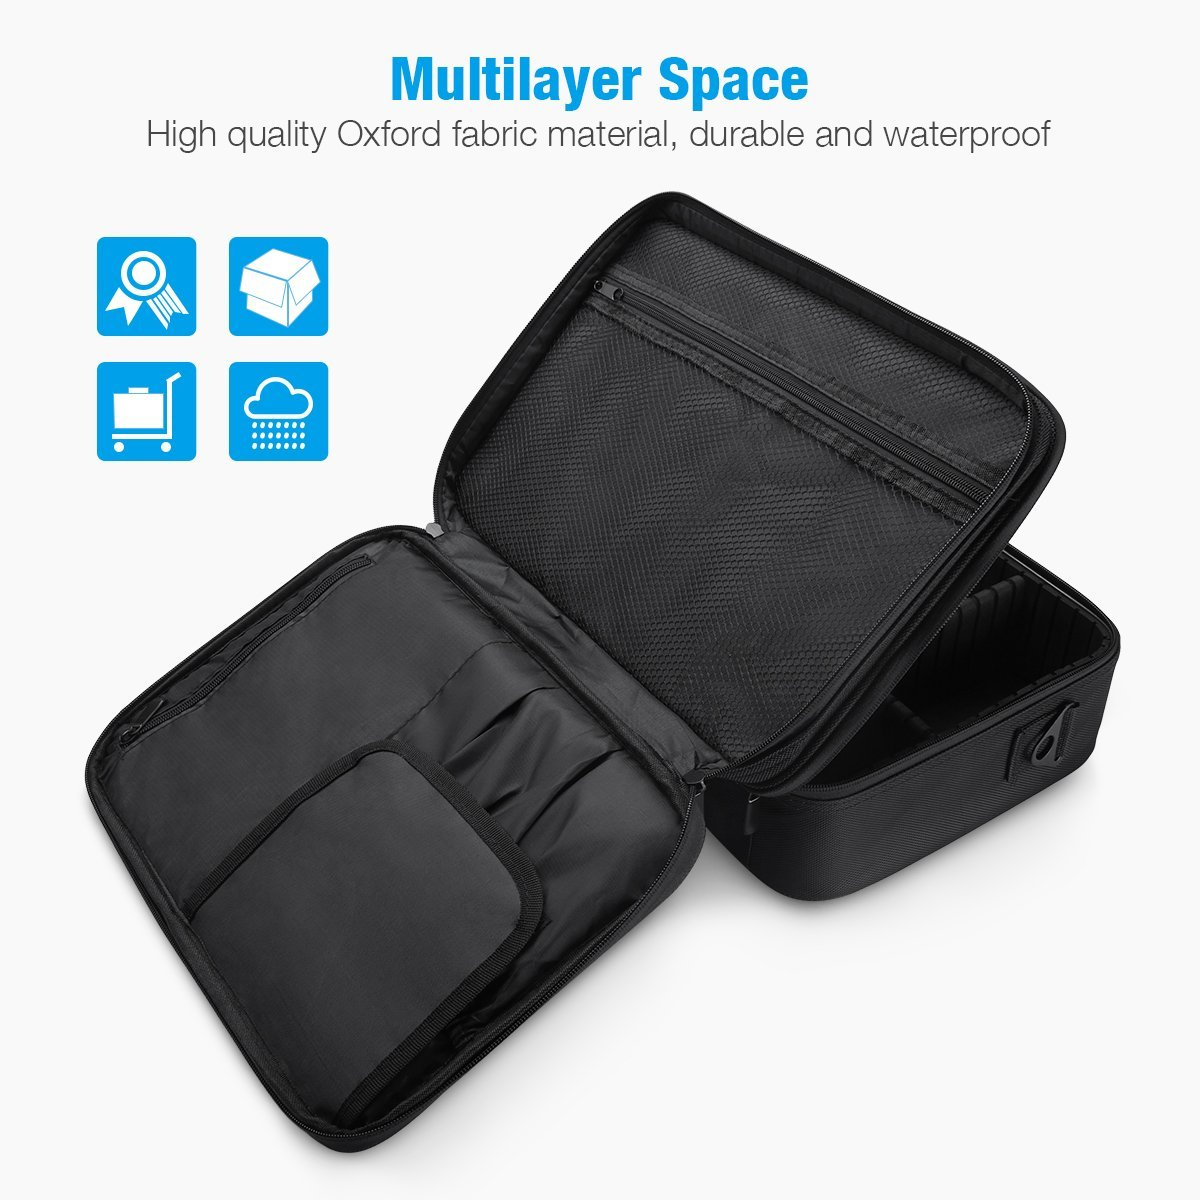 3 Layers Waterproof Makeup Travel Bag 15.1 Inch Makeup Train Case Makeup Bag Organizer with Adjustable Dividers for Cosmetics Makeup Brushes Jewelry Digital Accessories (Black-M) by LEPO (Image #5)